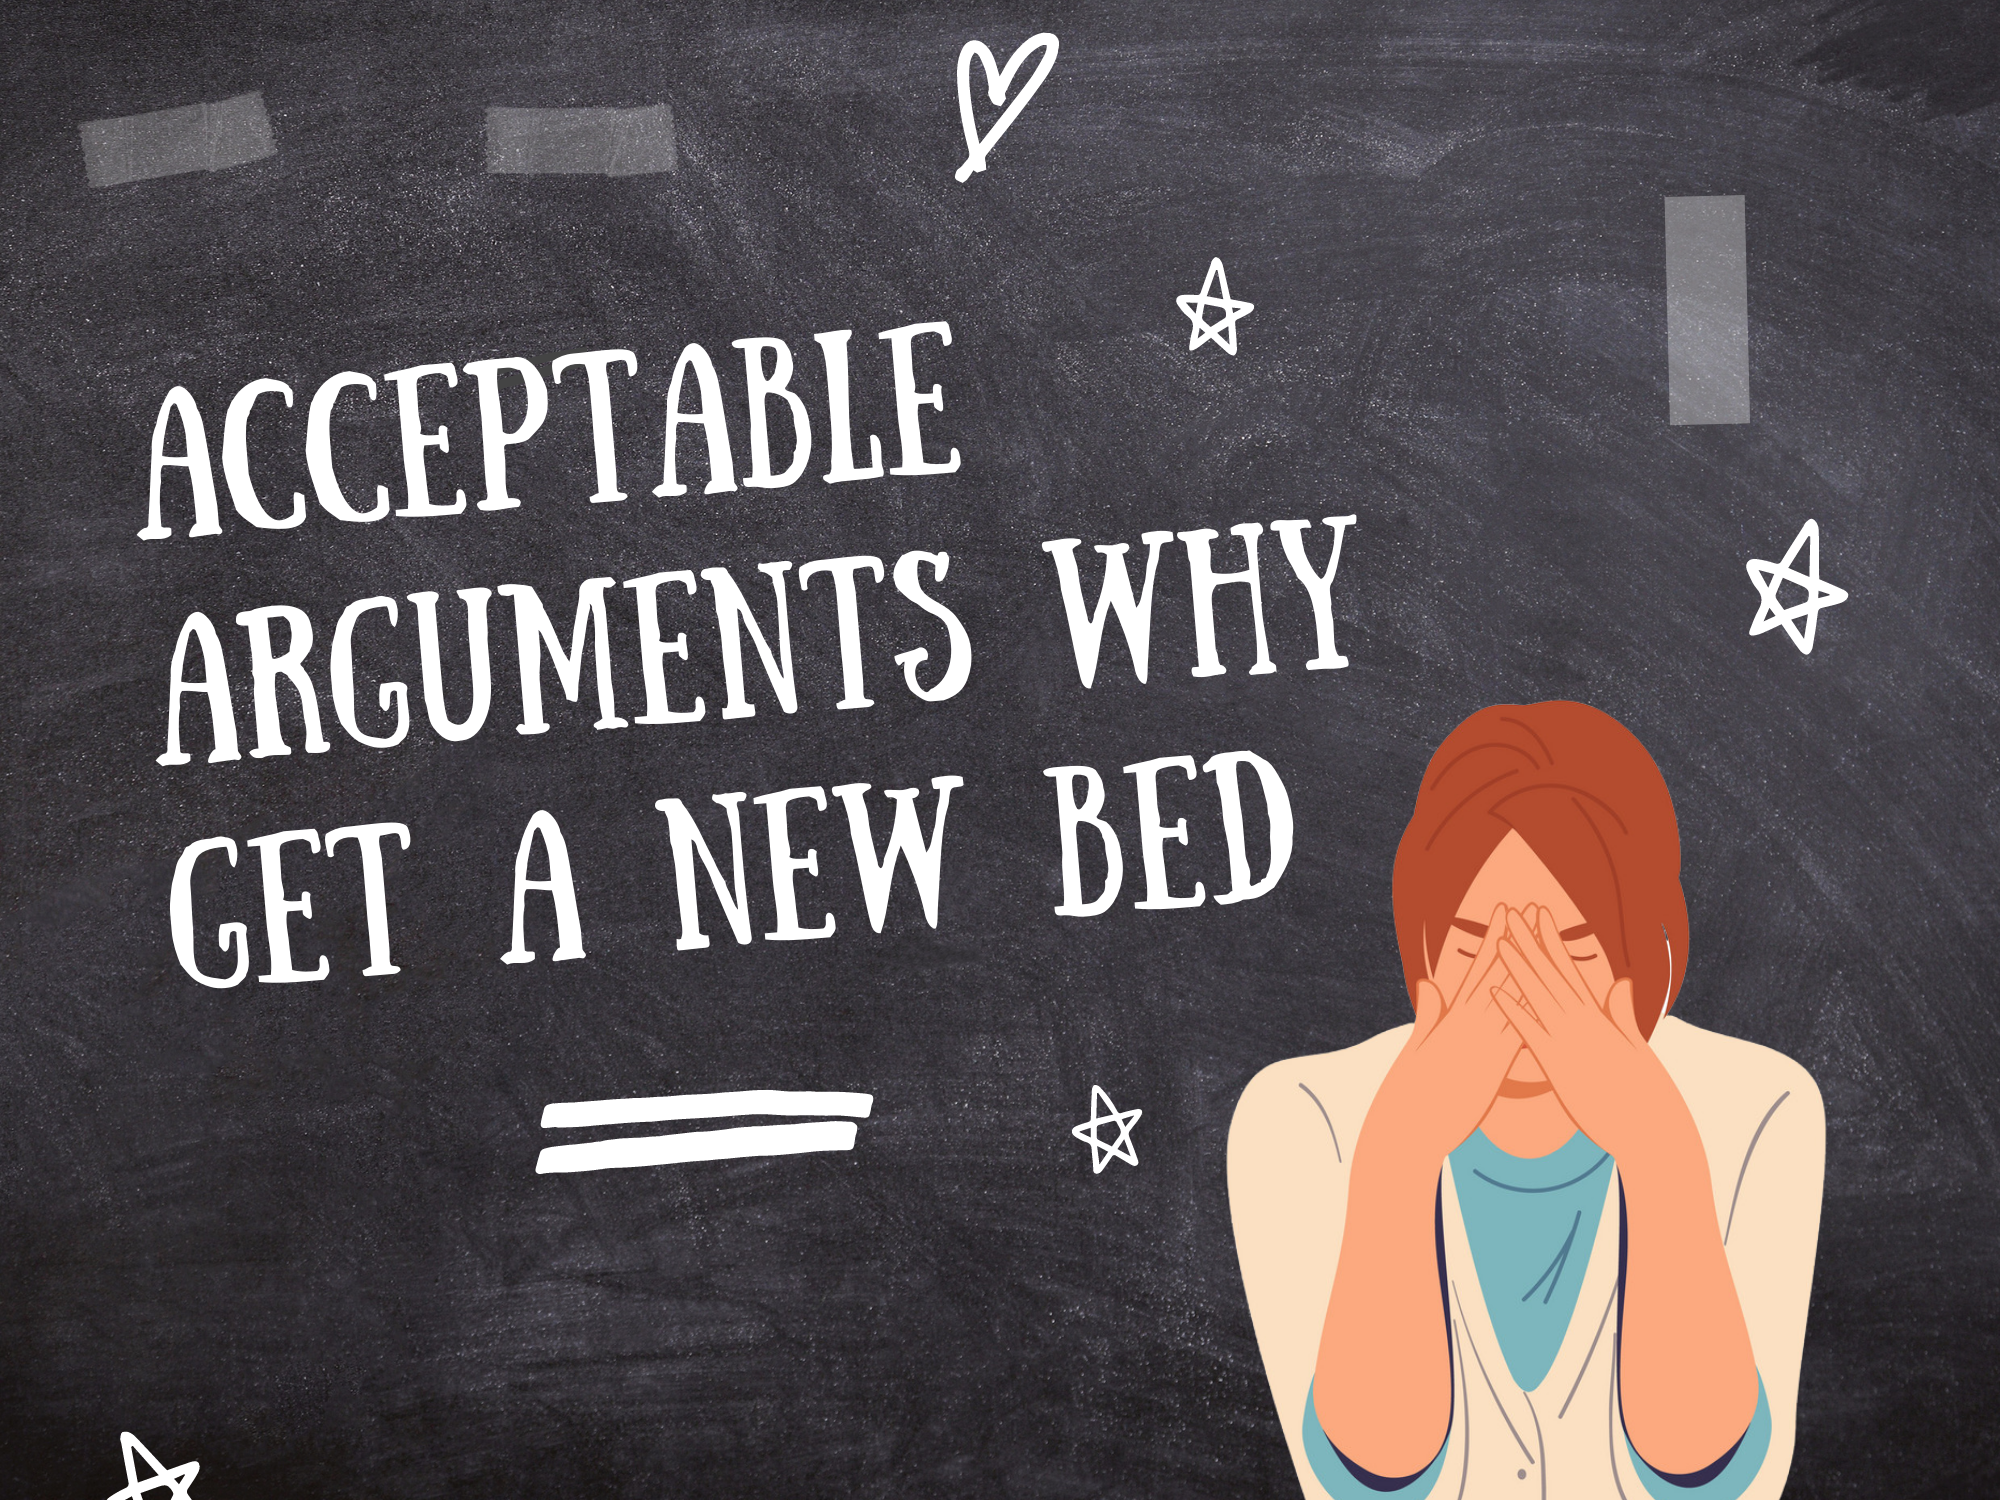 Acceptable-Arguments-Why-Get-a-New-Bed